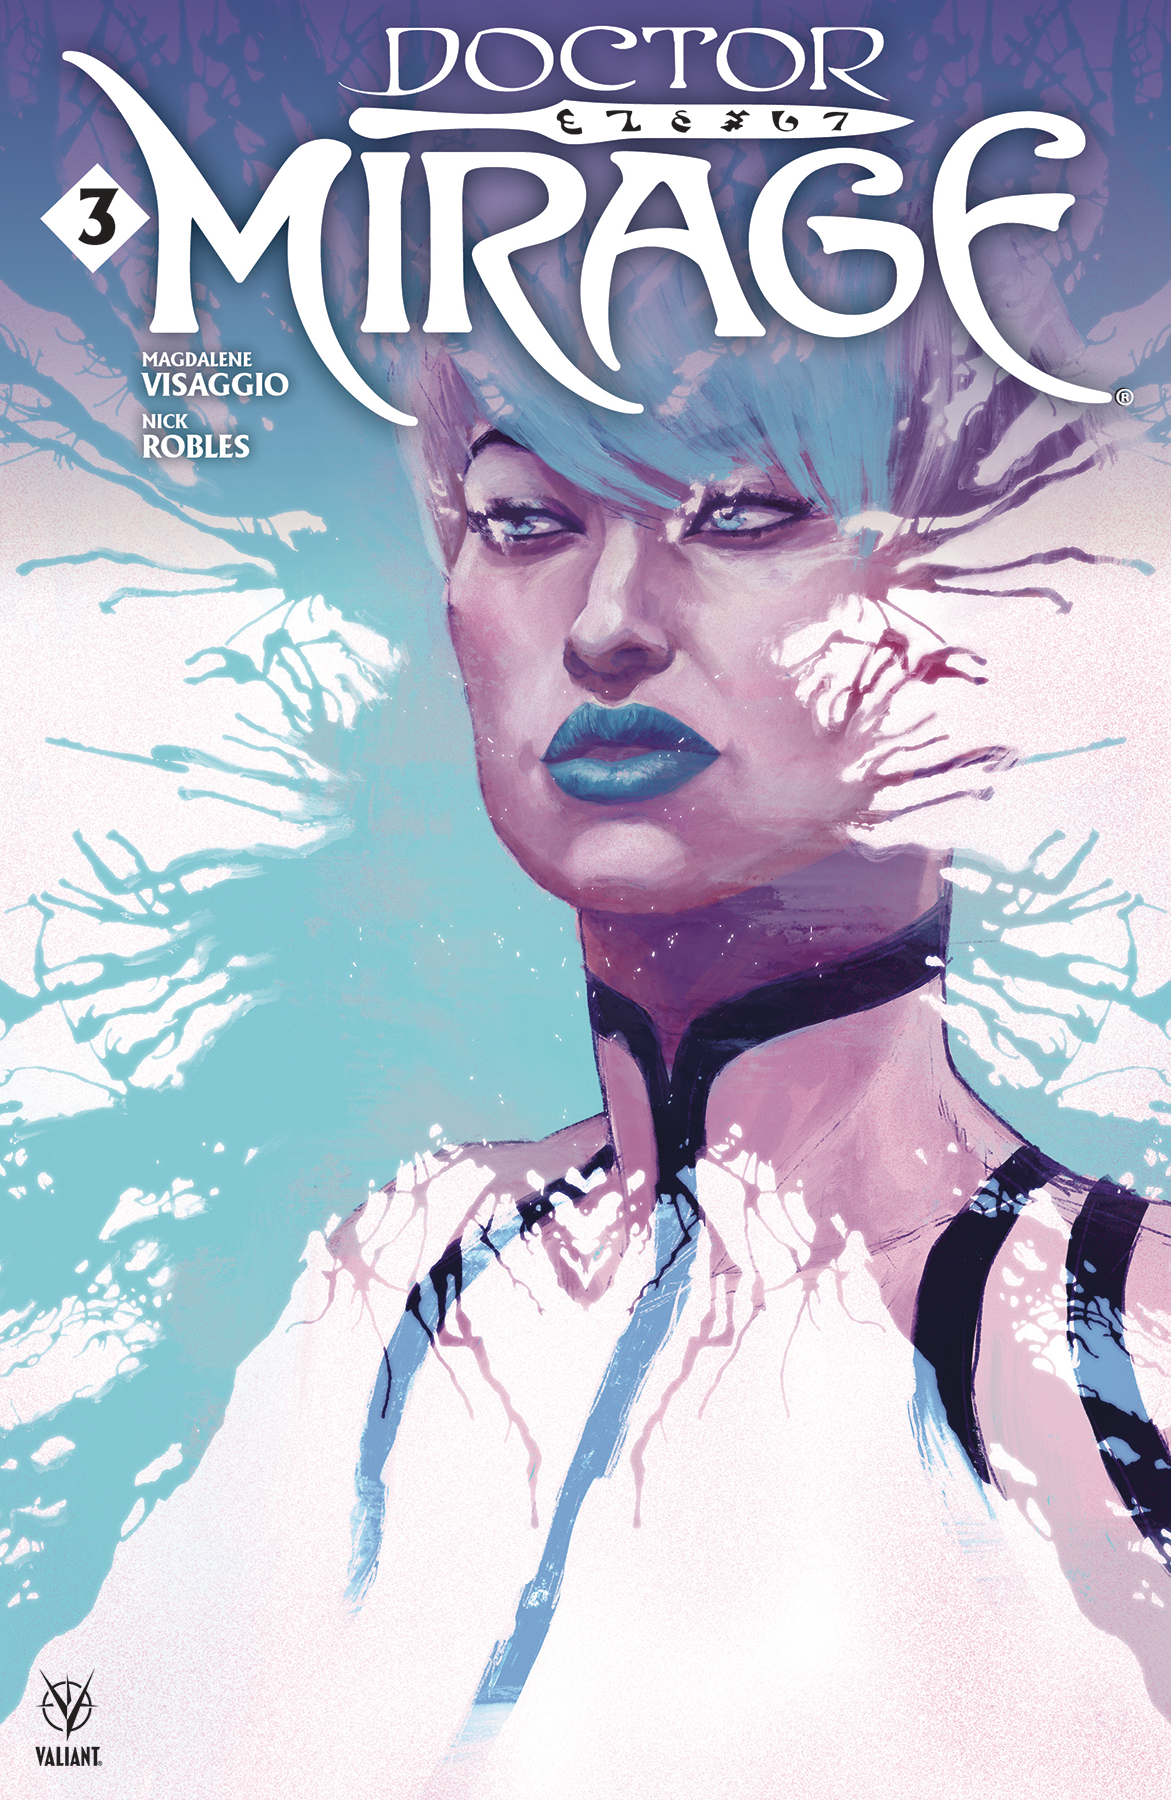 DOCTOR MIRAGE #3 (OF 5) CVR B ALLEN